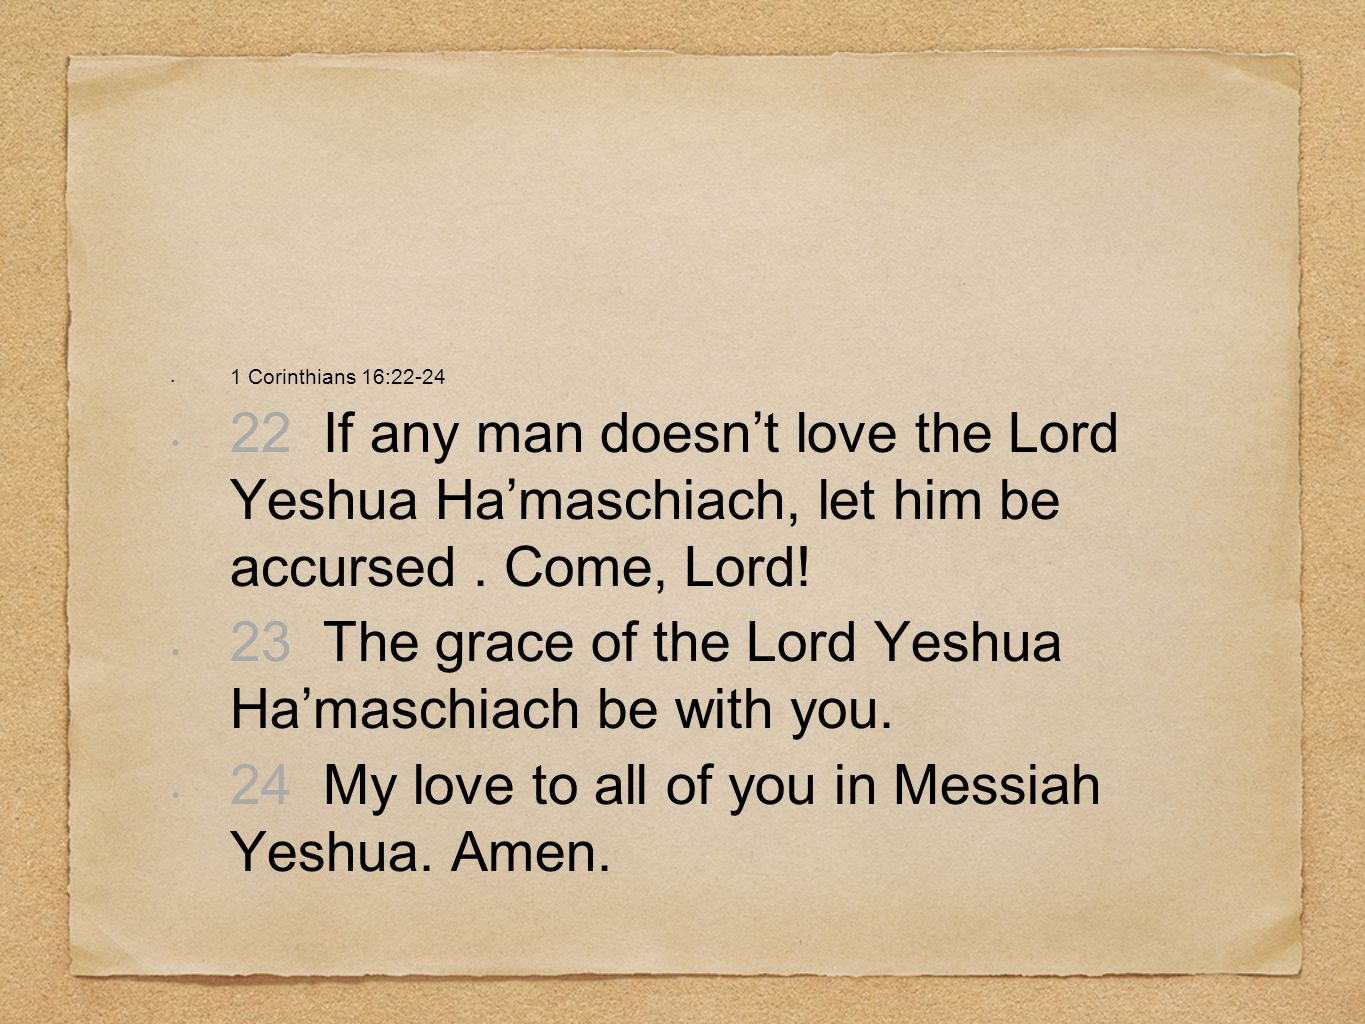 23 The grace of the Lord Yeshua Ha'maschiach be with you.